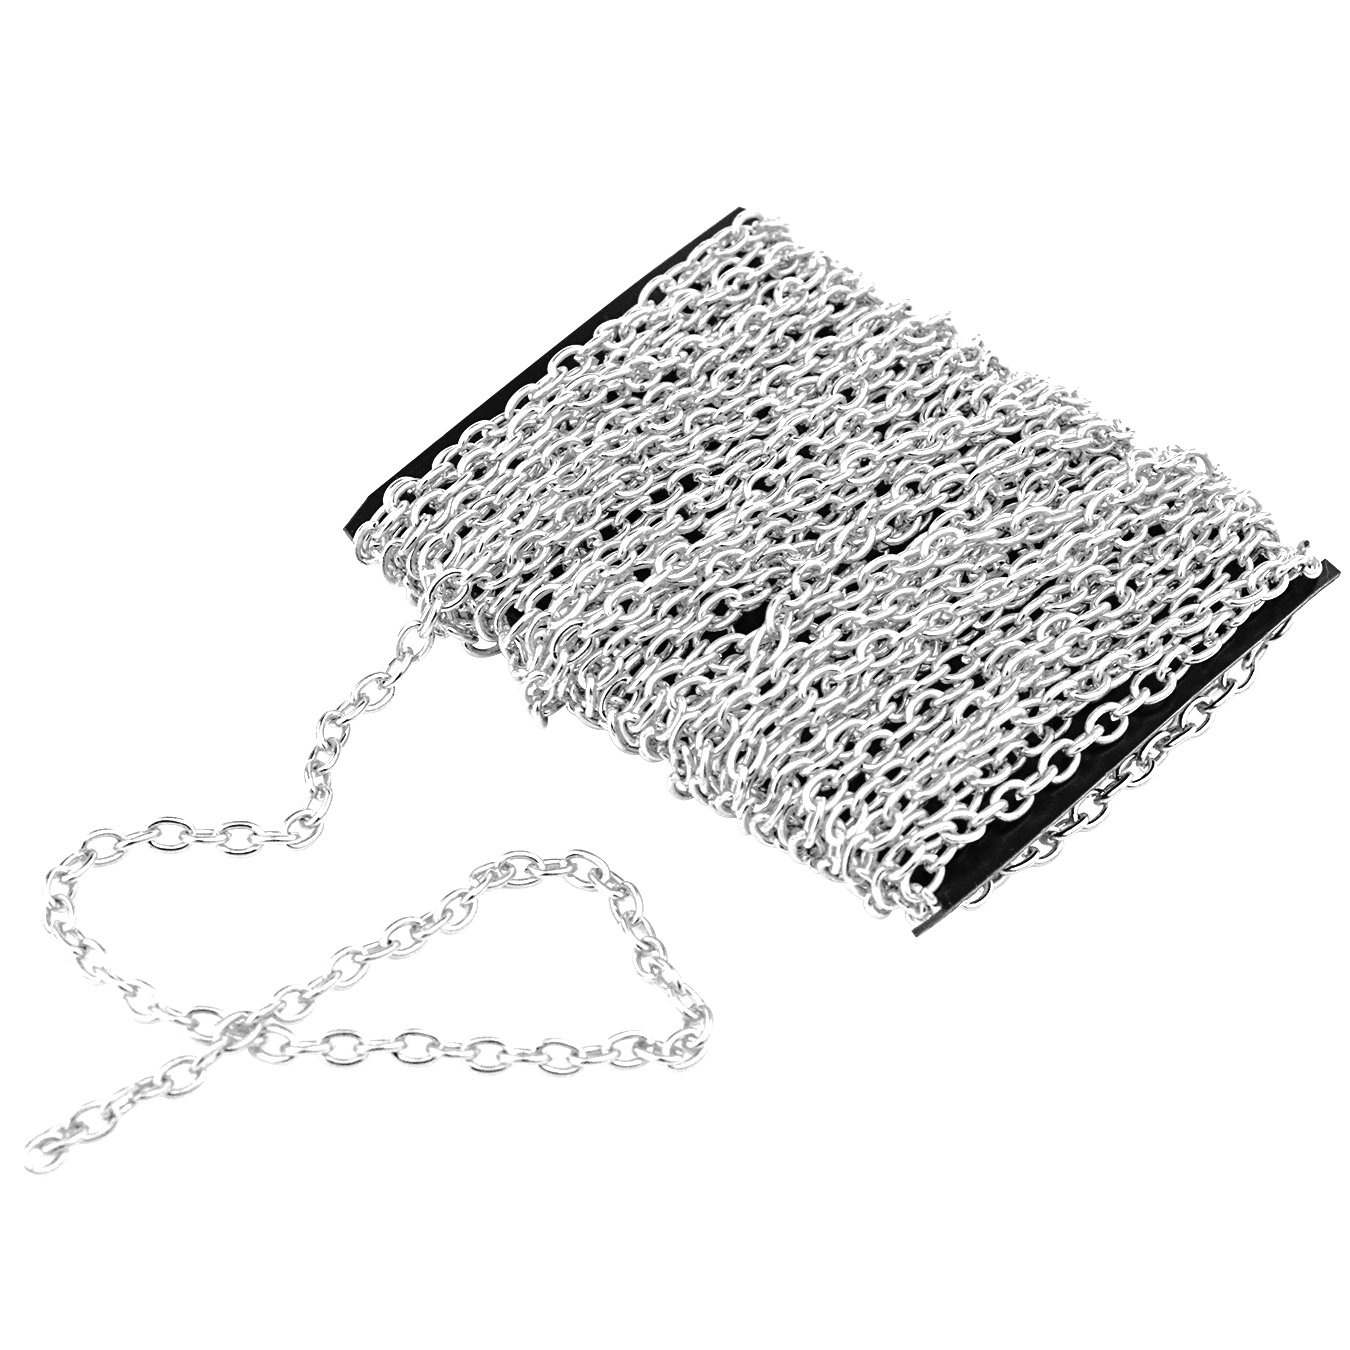 Dapped Small Cable in Bulk for Necklace Jewelry Making DIY 5 Meters Jewelry Making Chain Silver Plated Ishua 3*4mm Jewelry Making Chain